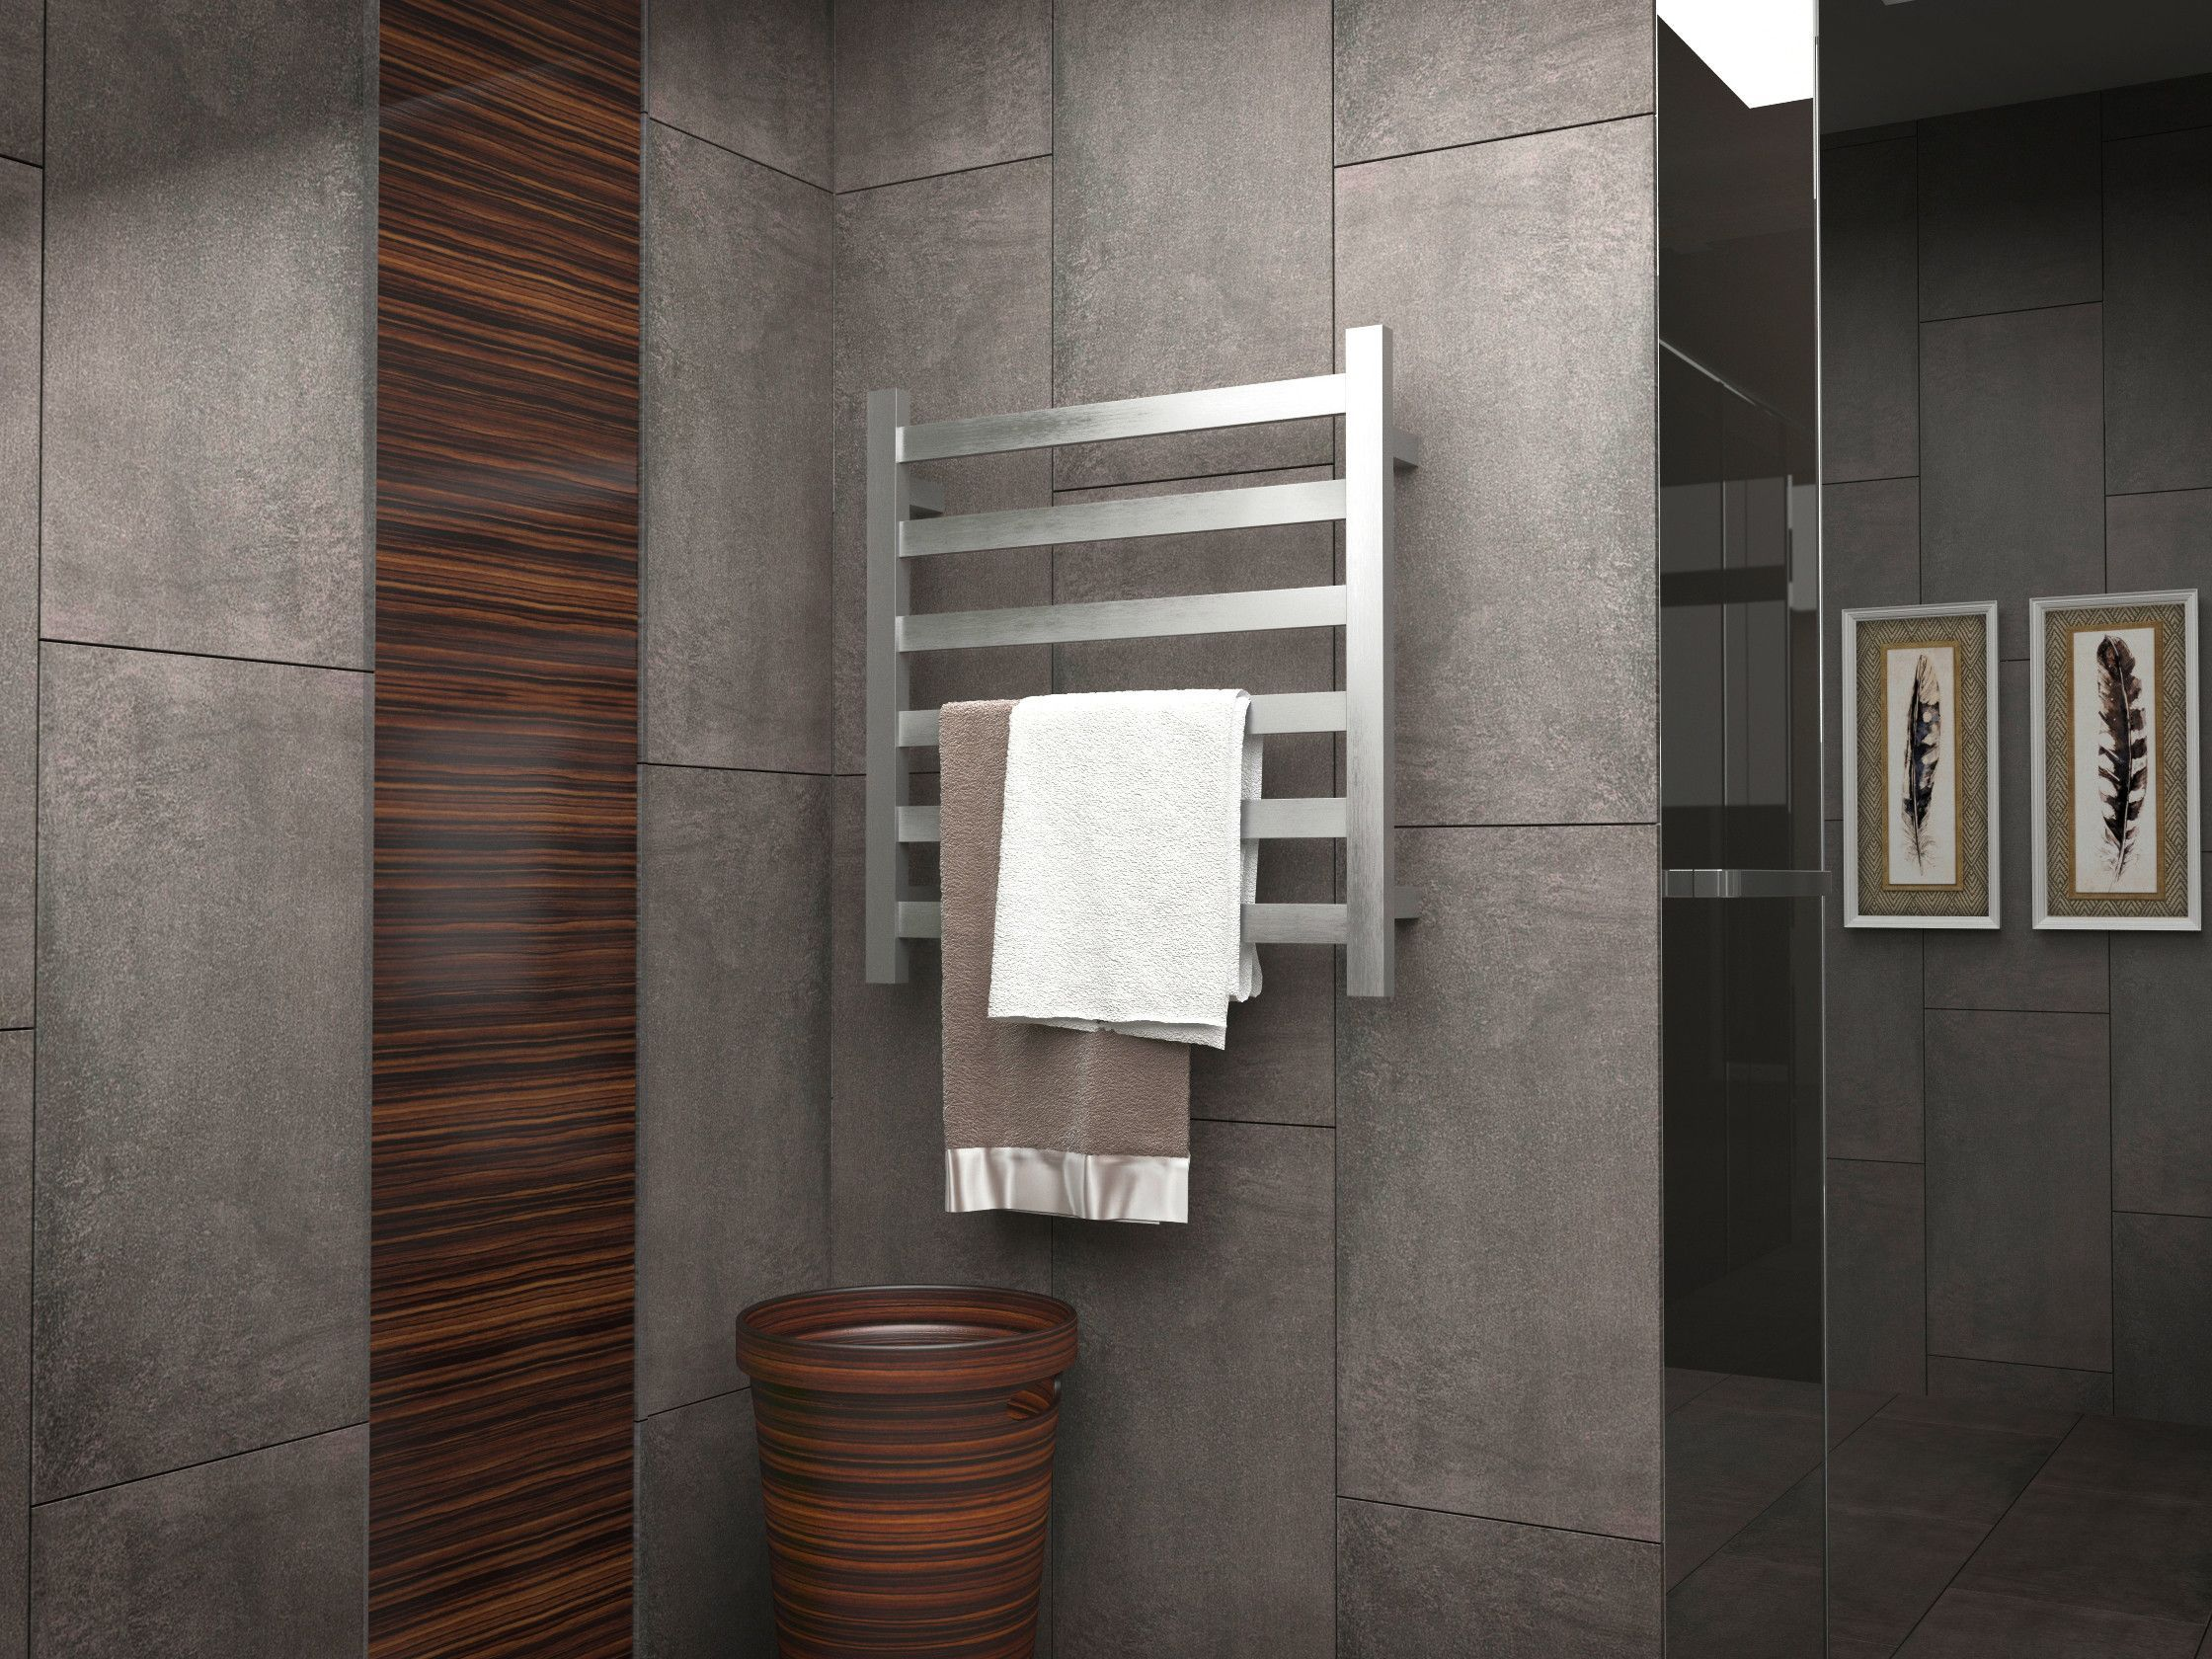 Note 6 Bar Stainless Steel Wall Mounted Electric Towel Warmer Rack